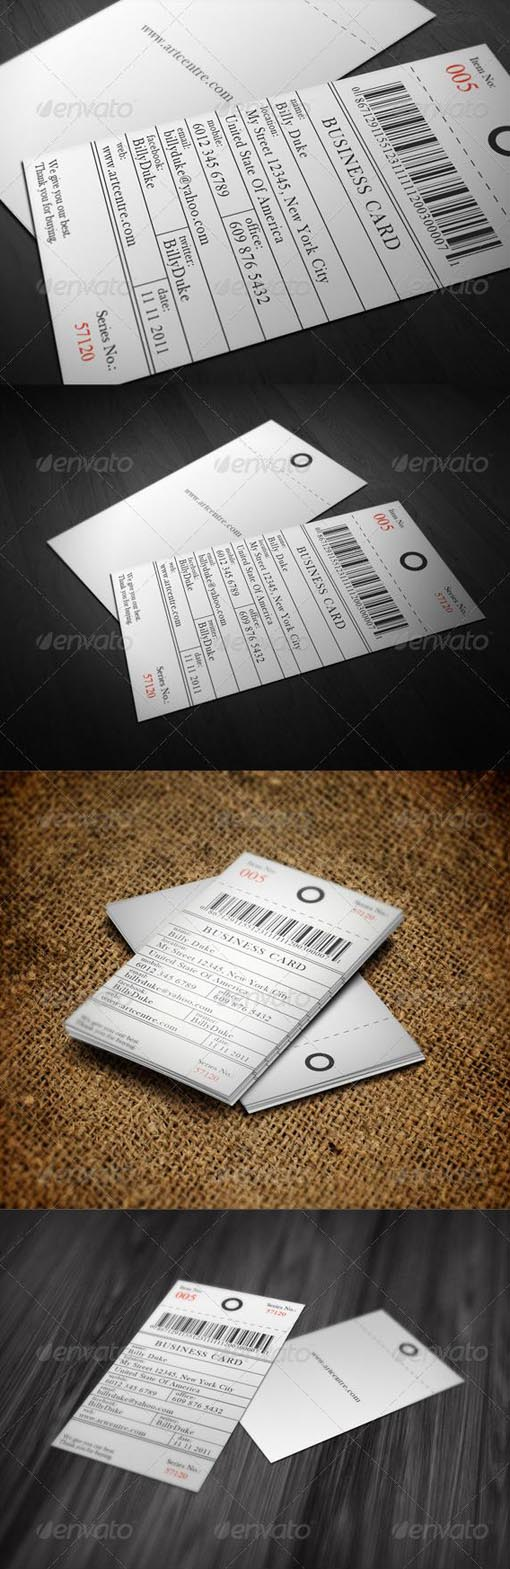 price tag business card - Google Search | Quiverr Biz Cards ...